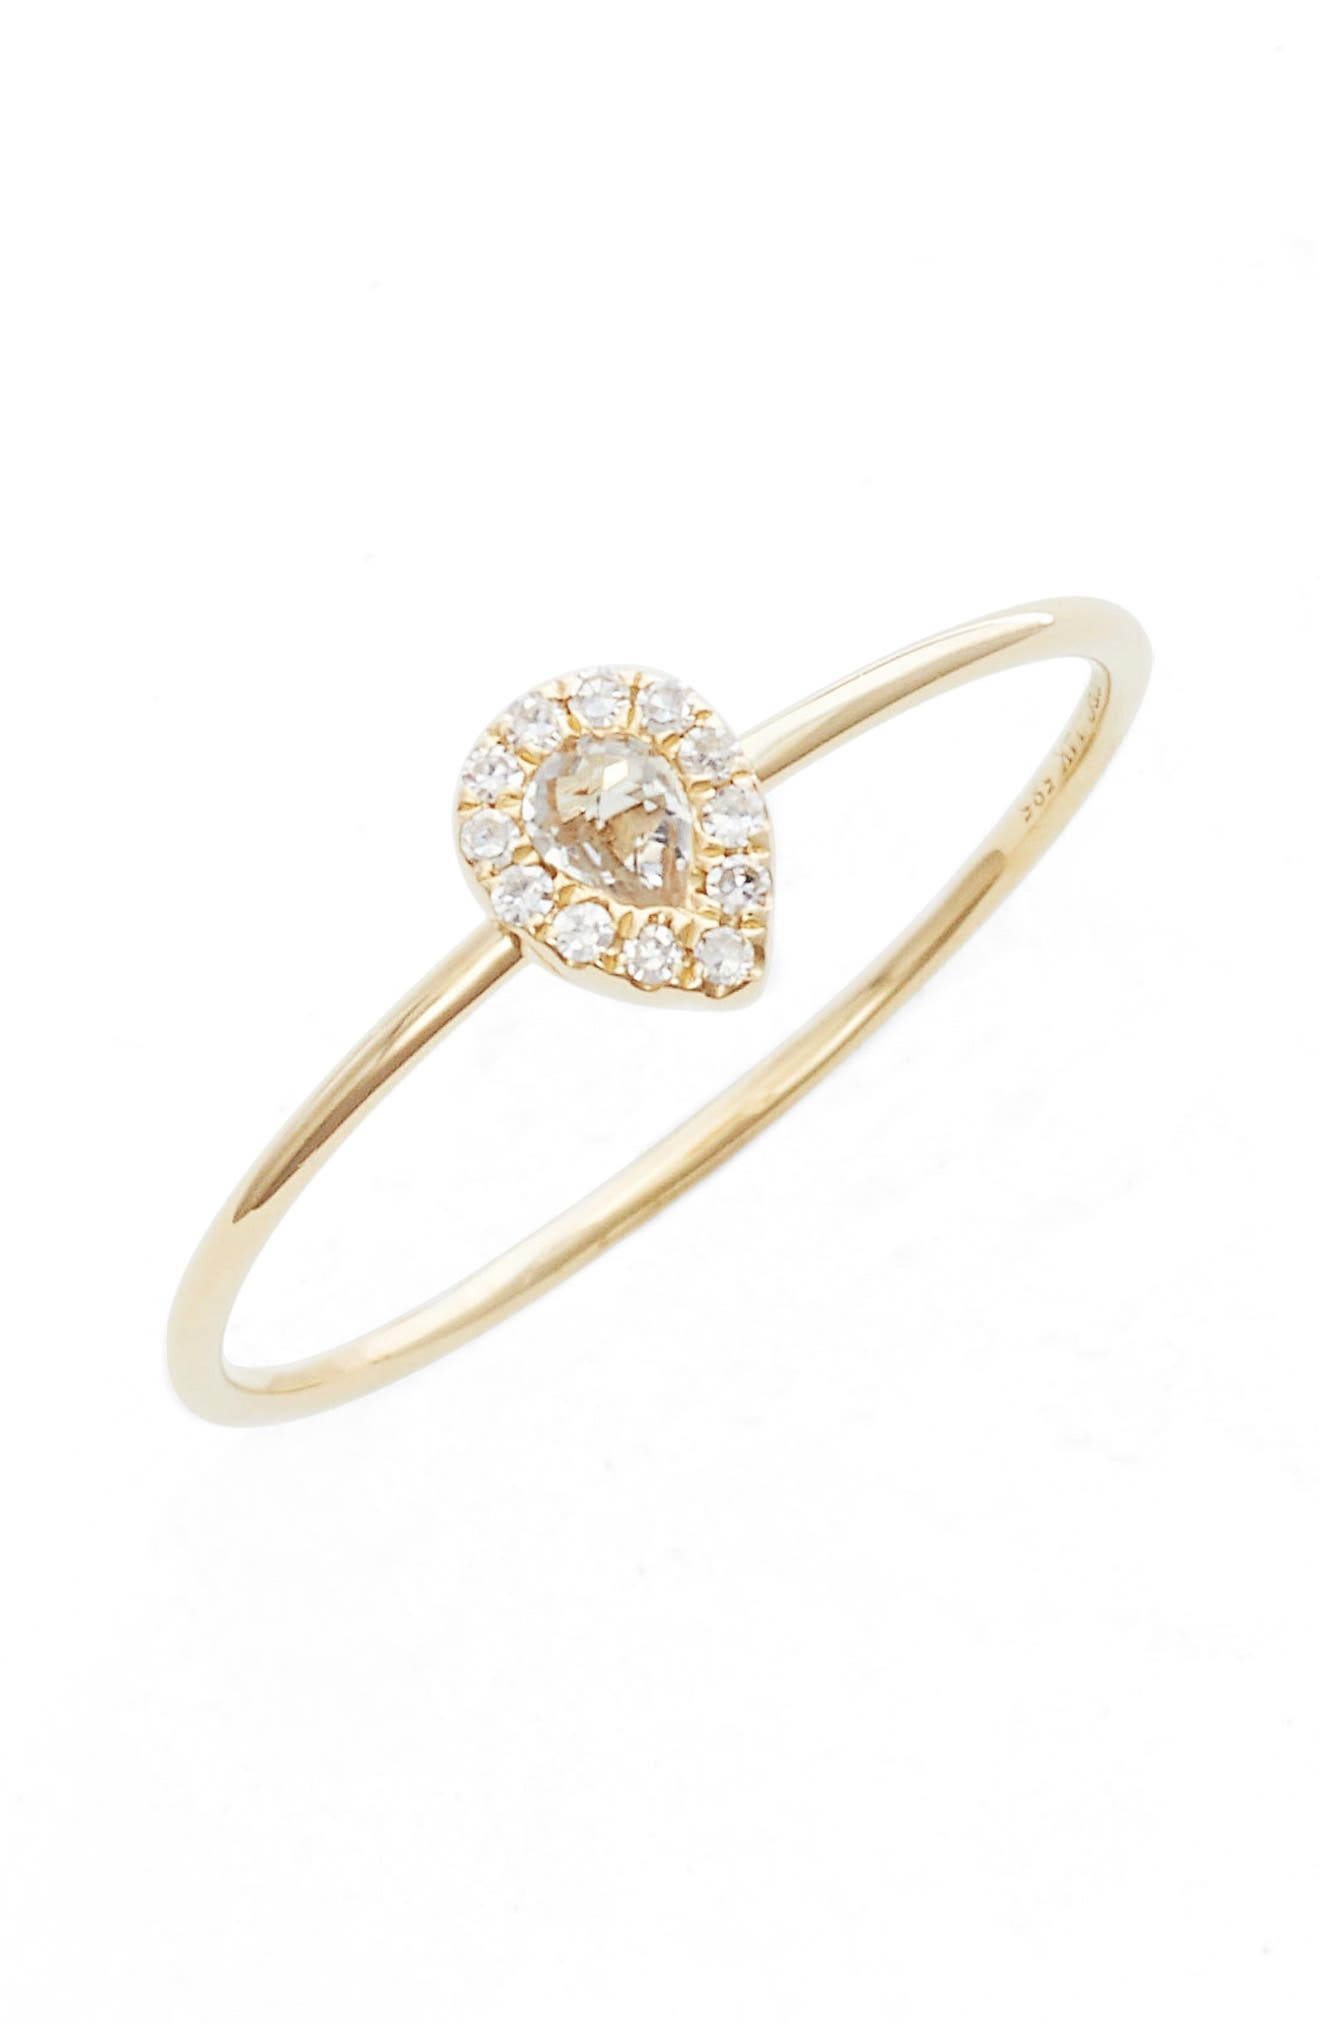 EF COLLECTION, Teardrop Diamond & Topaz Stack Ring, Main thumbnail 1, color, YELLOW GOLD